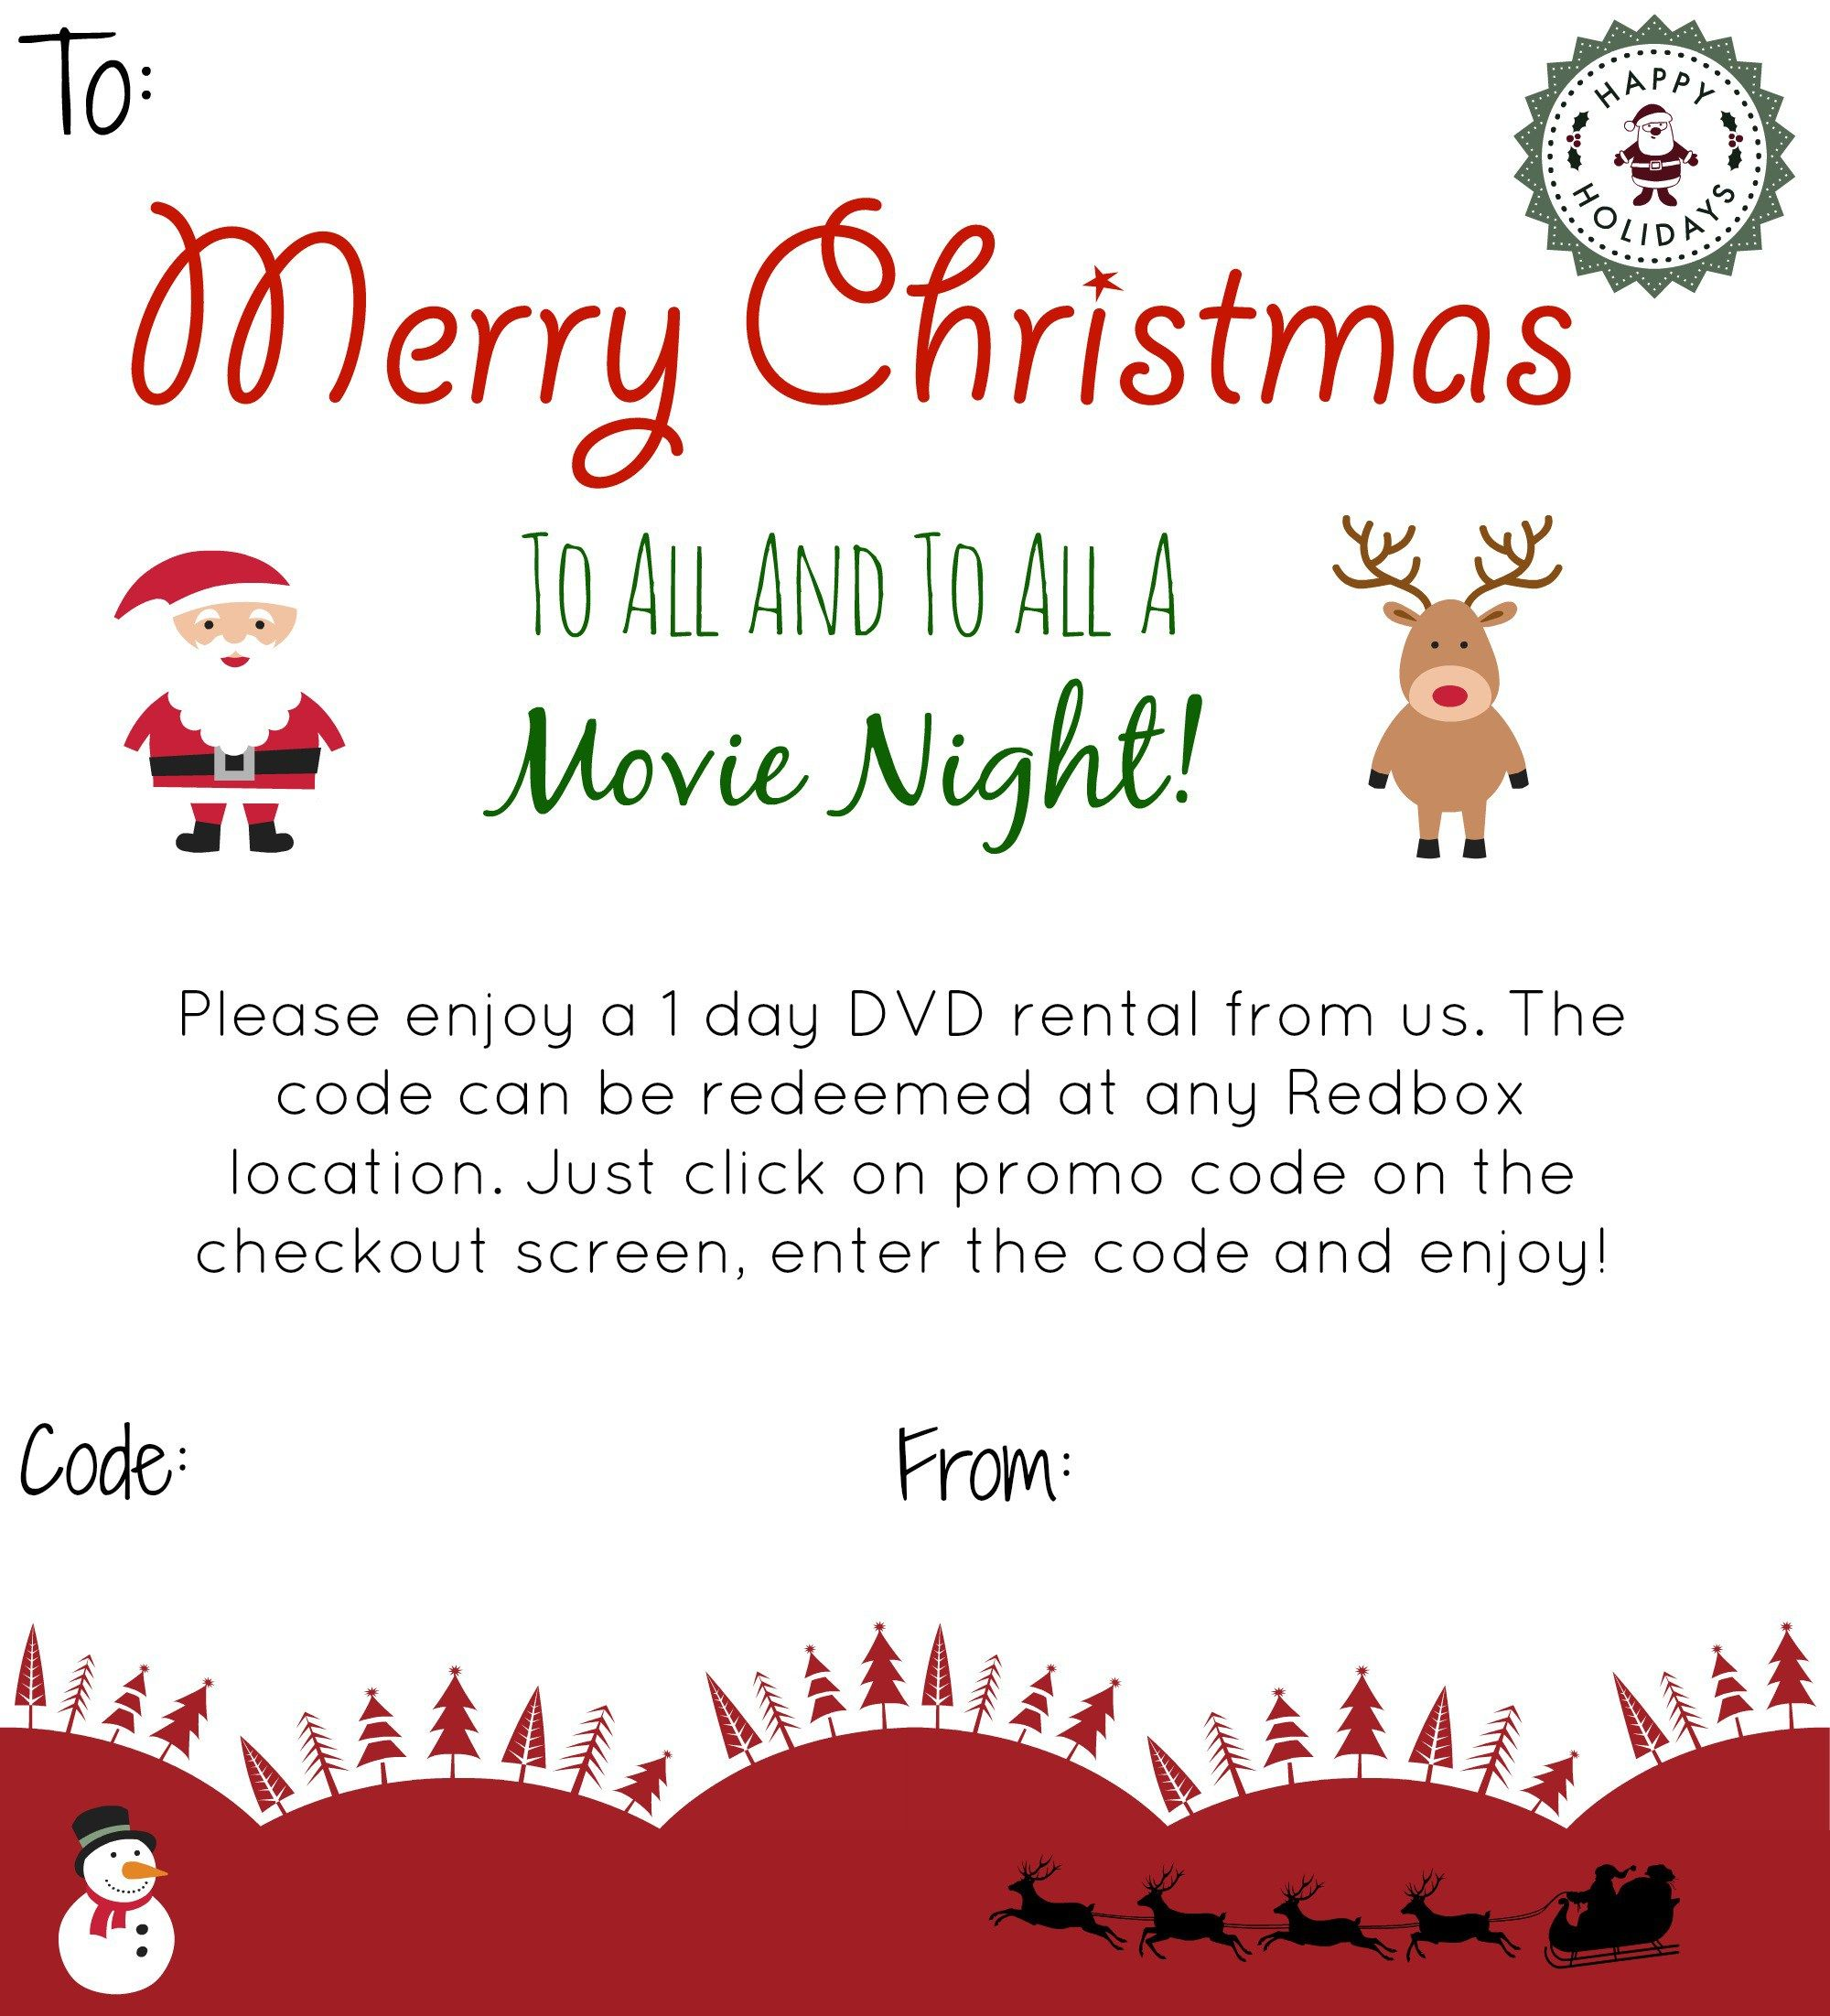 Give The Gift of RedBox Neighbor christmas gifts